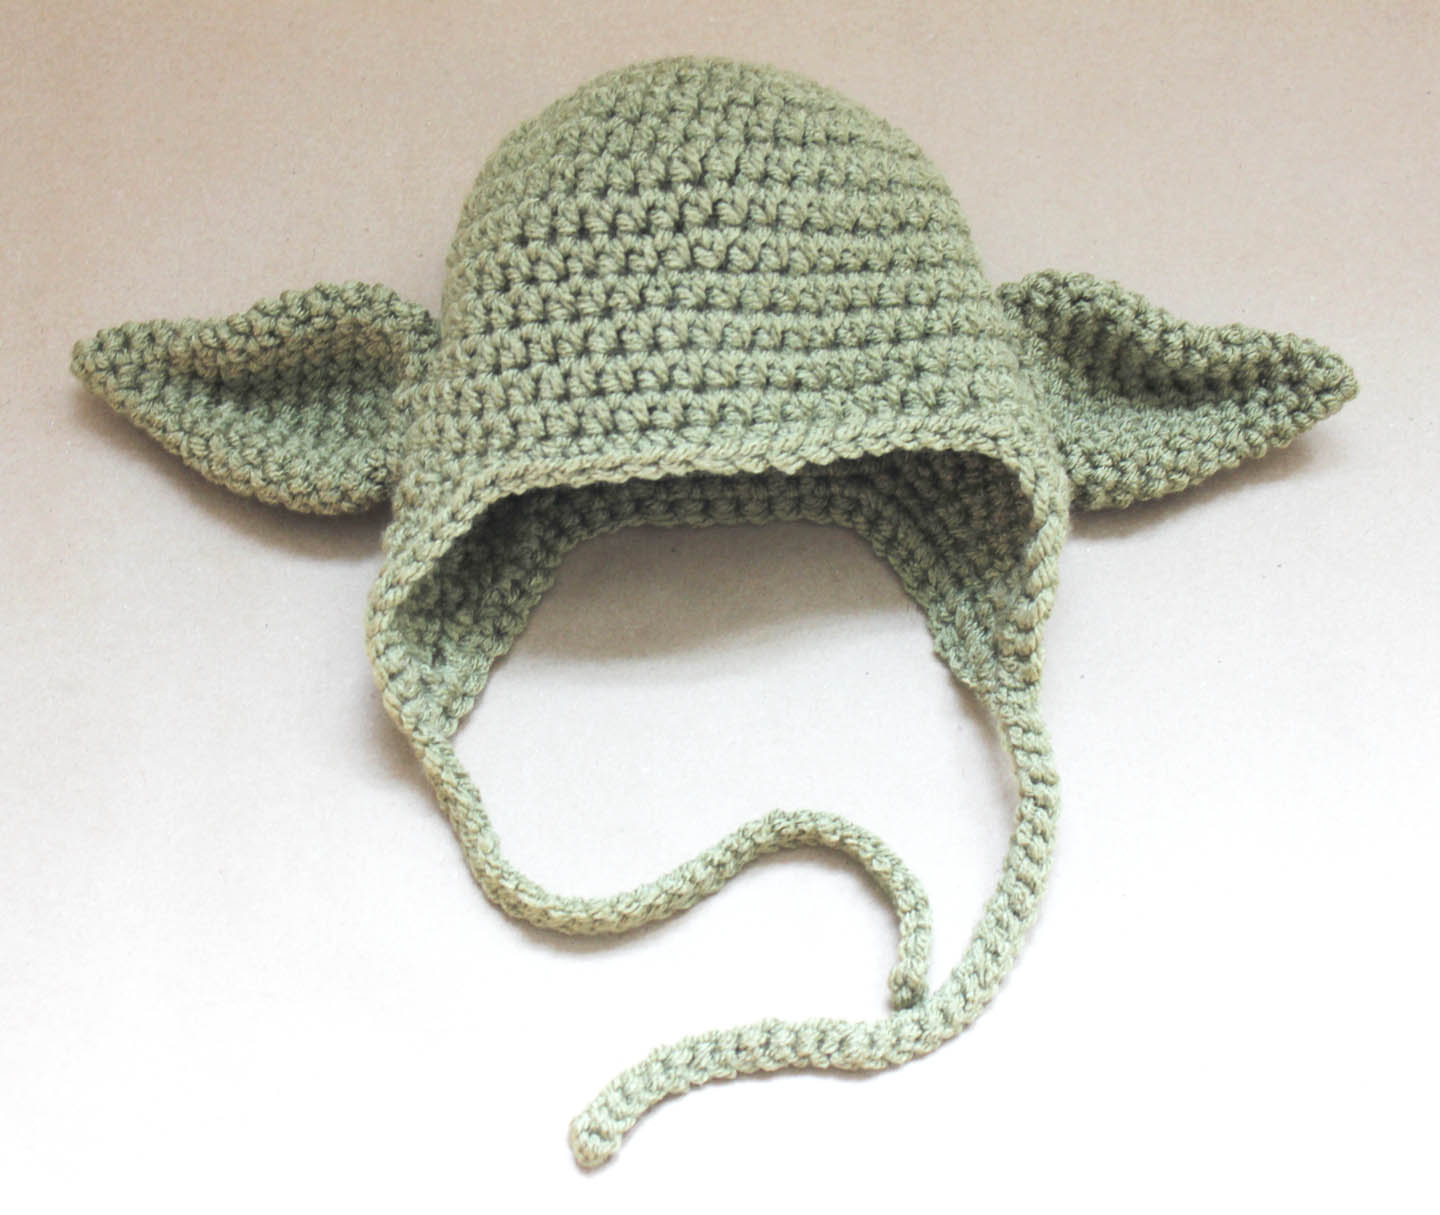 Knitting Pattern For Baby Yoda Hat : Crochet Yoda Hat - Repeat Crafter Me